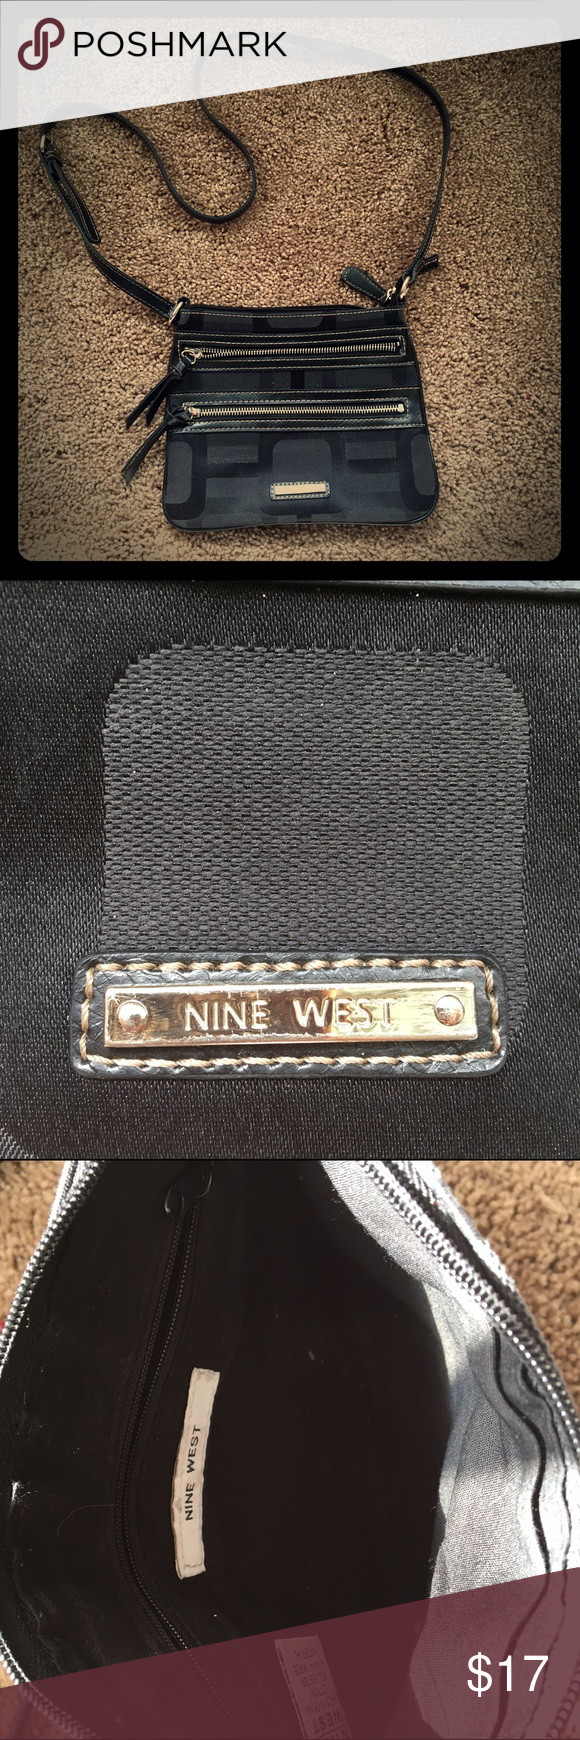 🖤Nine West purse🖤 Super cute bag someone gave me as a gift! I used it for one trip and haven't used it again! It's in great shape! It's about 29.5 inches from the top of the shoulder to the bottom of the bag. One small zip pocket on the side, but other than that, a pretty open bag on the inside. Both zippers work on the outside and the top. Nine West Bags Crossbody Bags